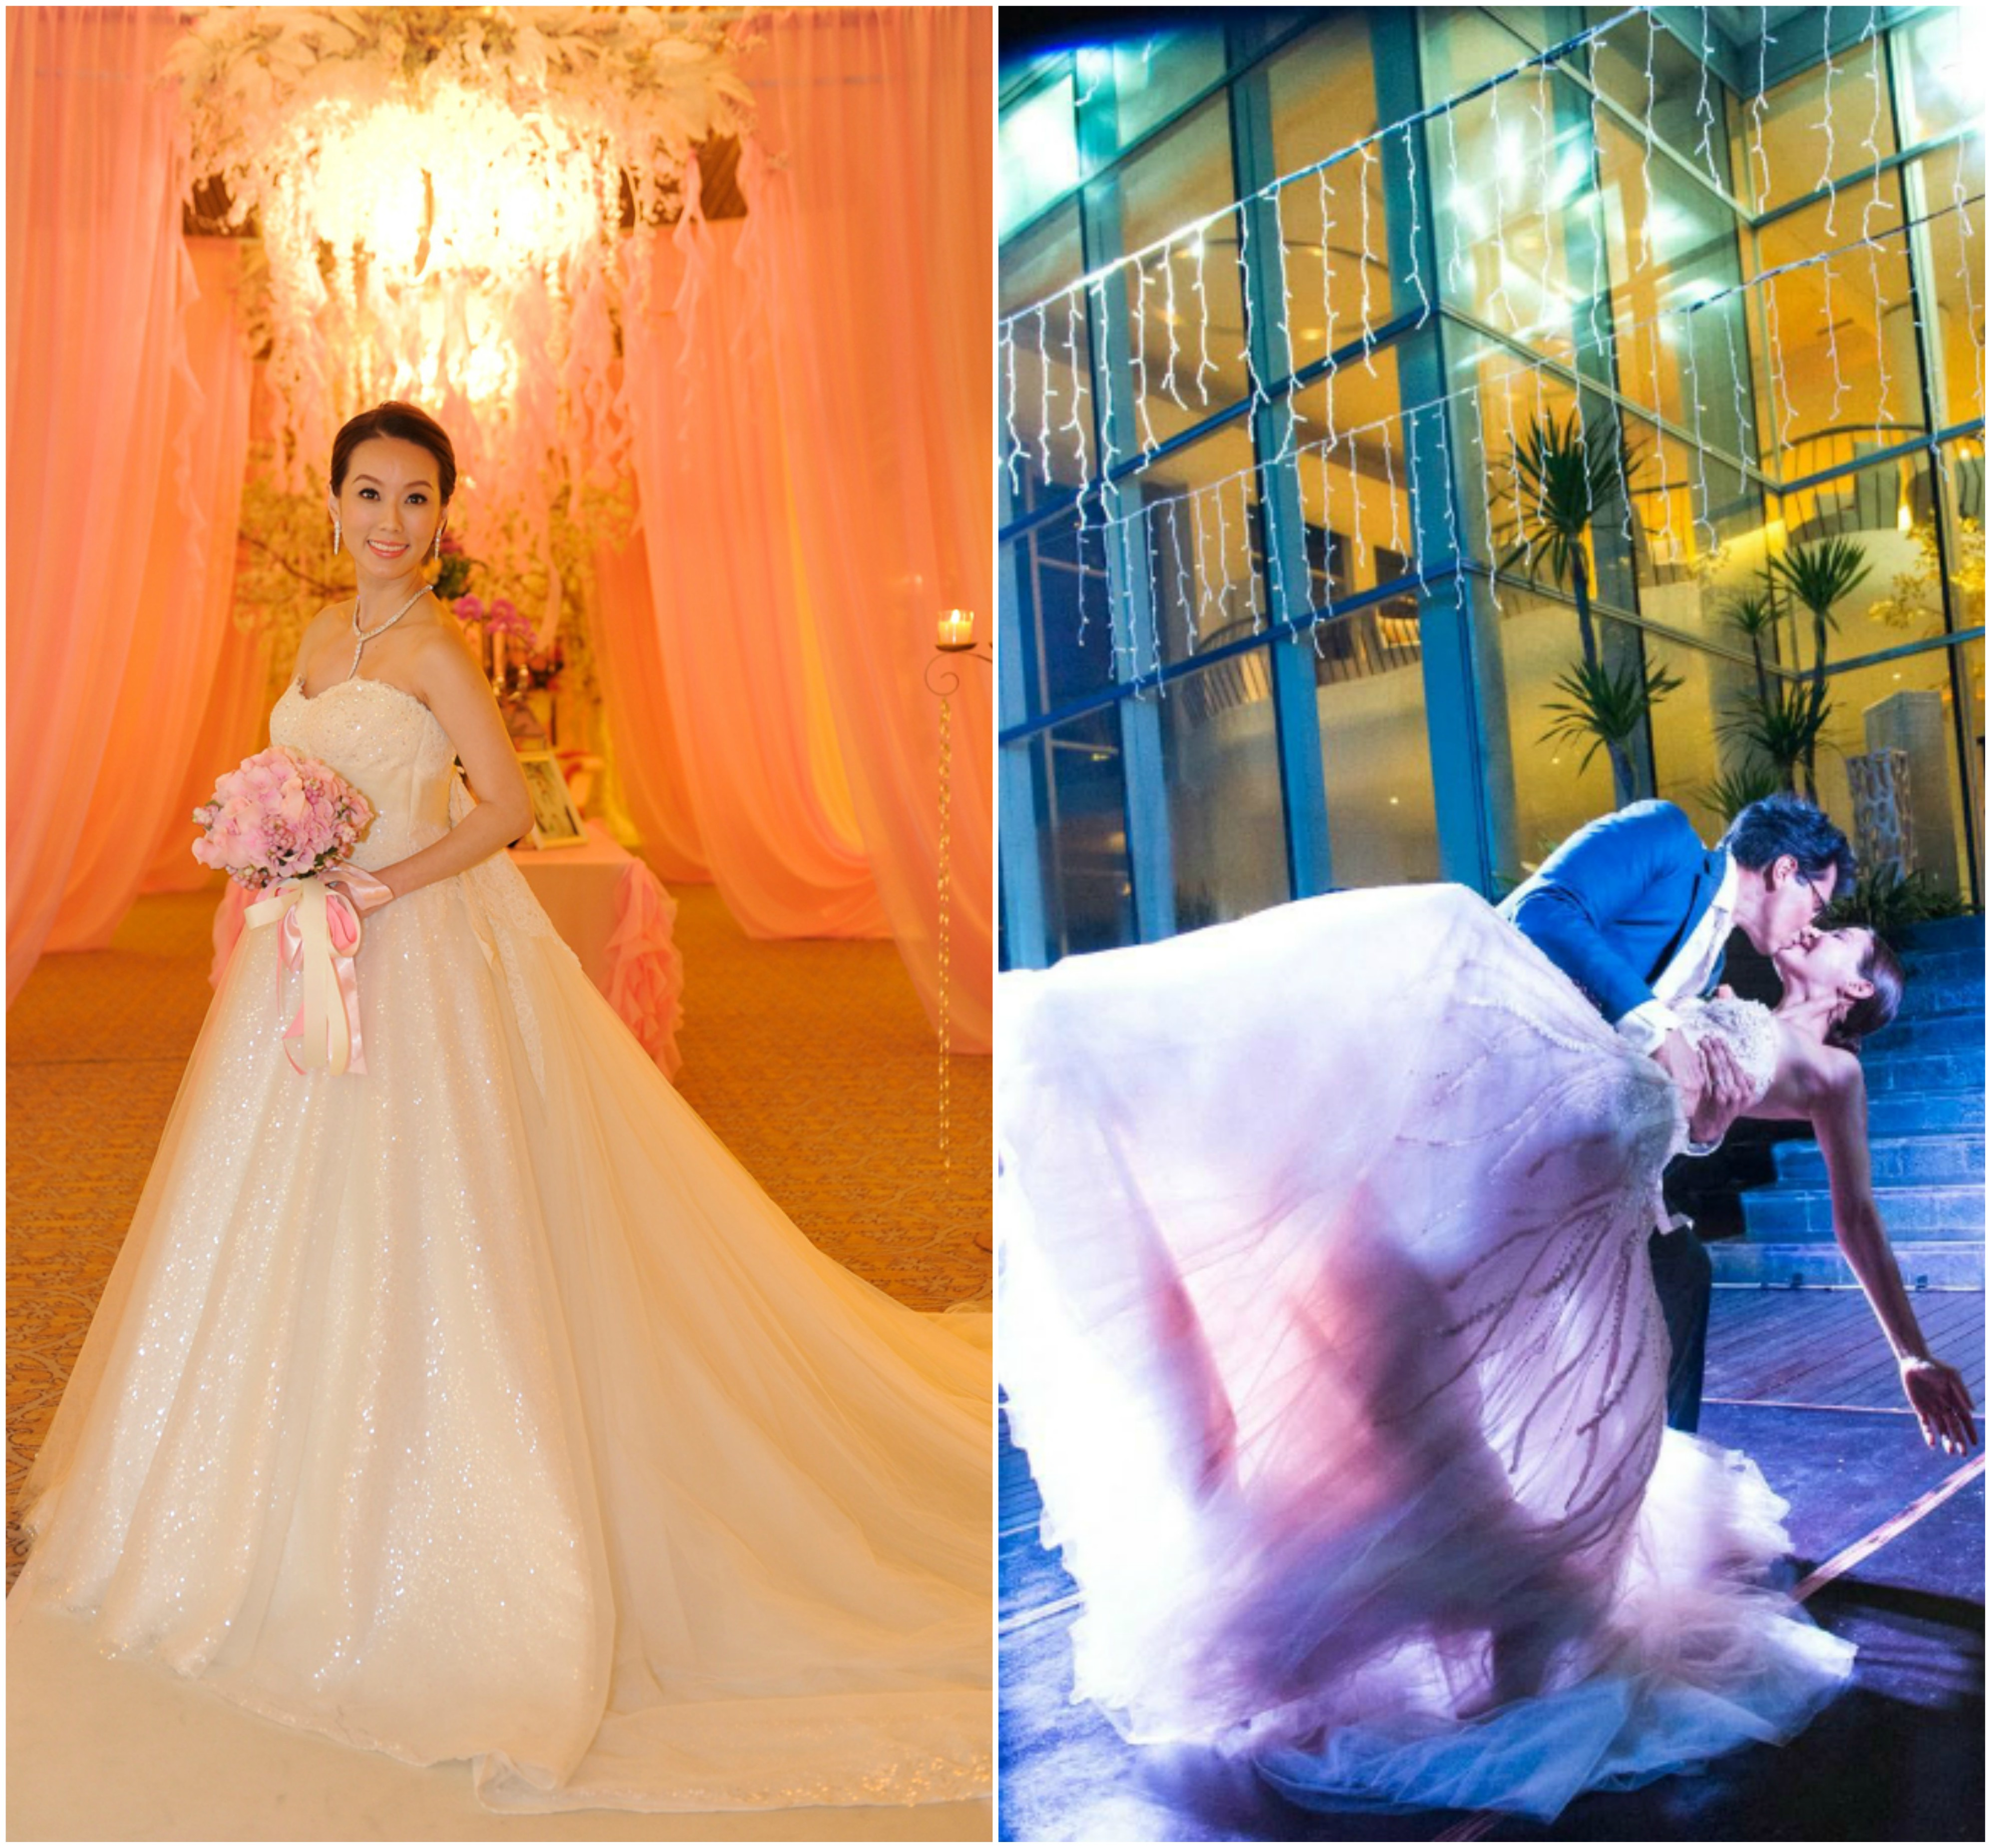 6 of the prettiest celebrity wedding dresses in Singapore